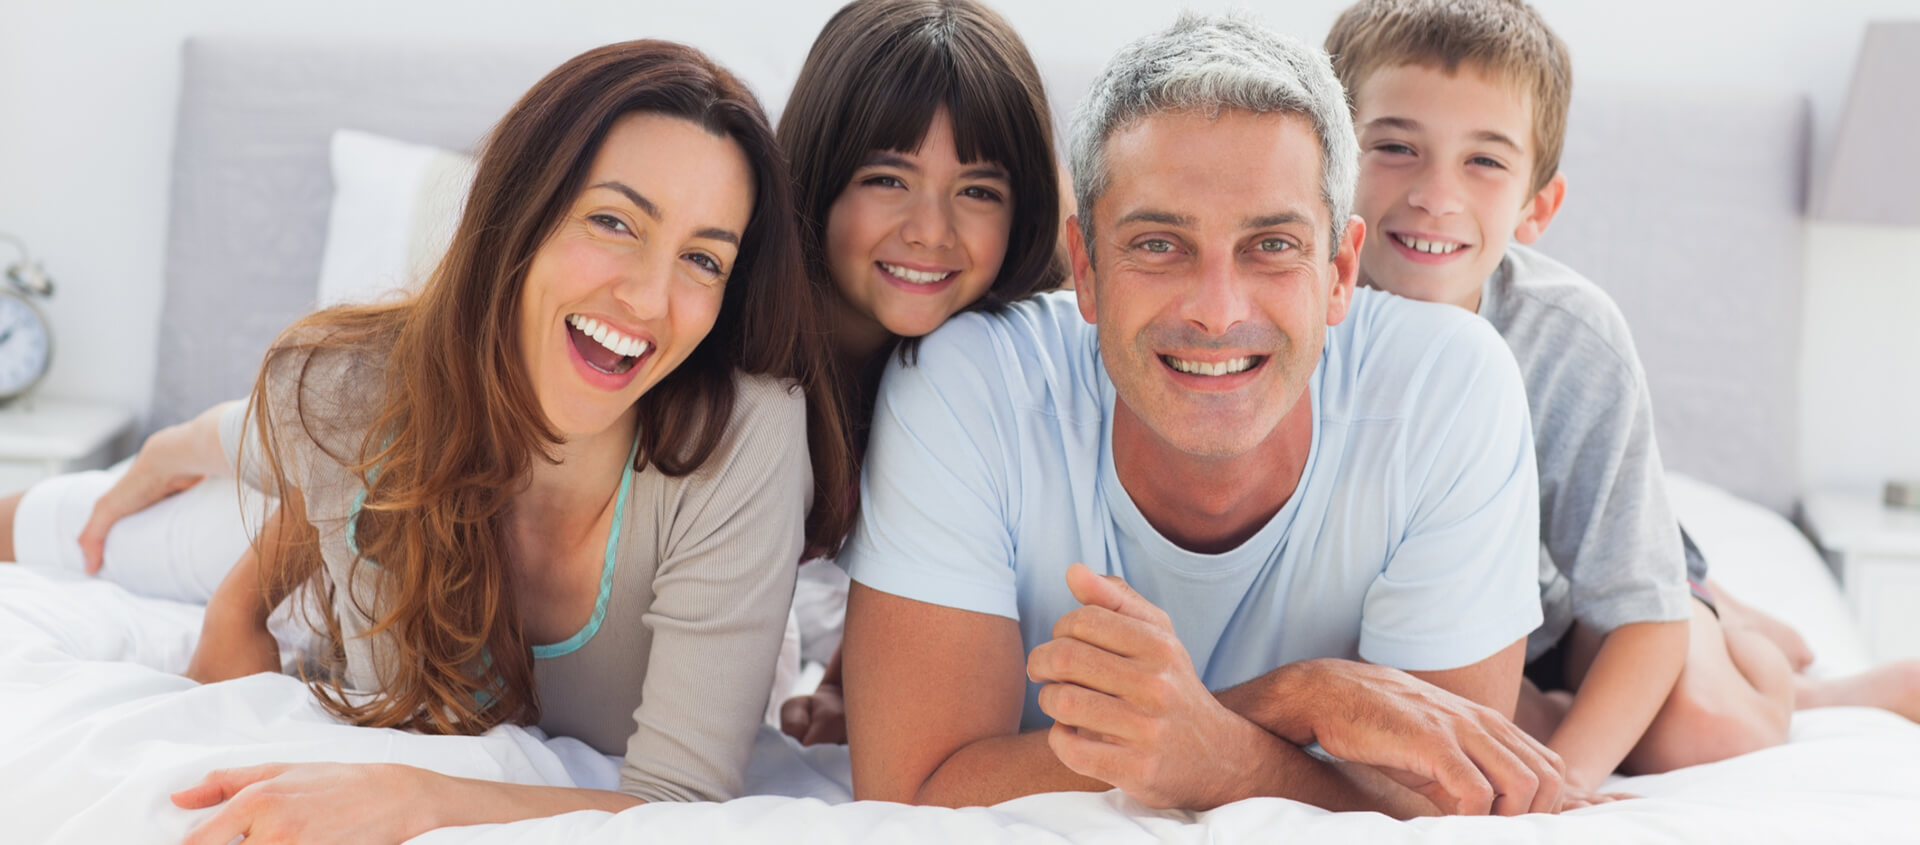 Quality Dental Service For The Entire Family In Plano TX Area